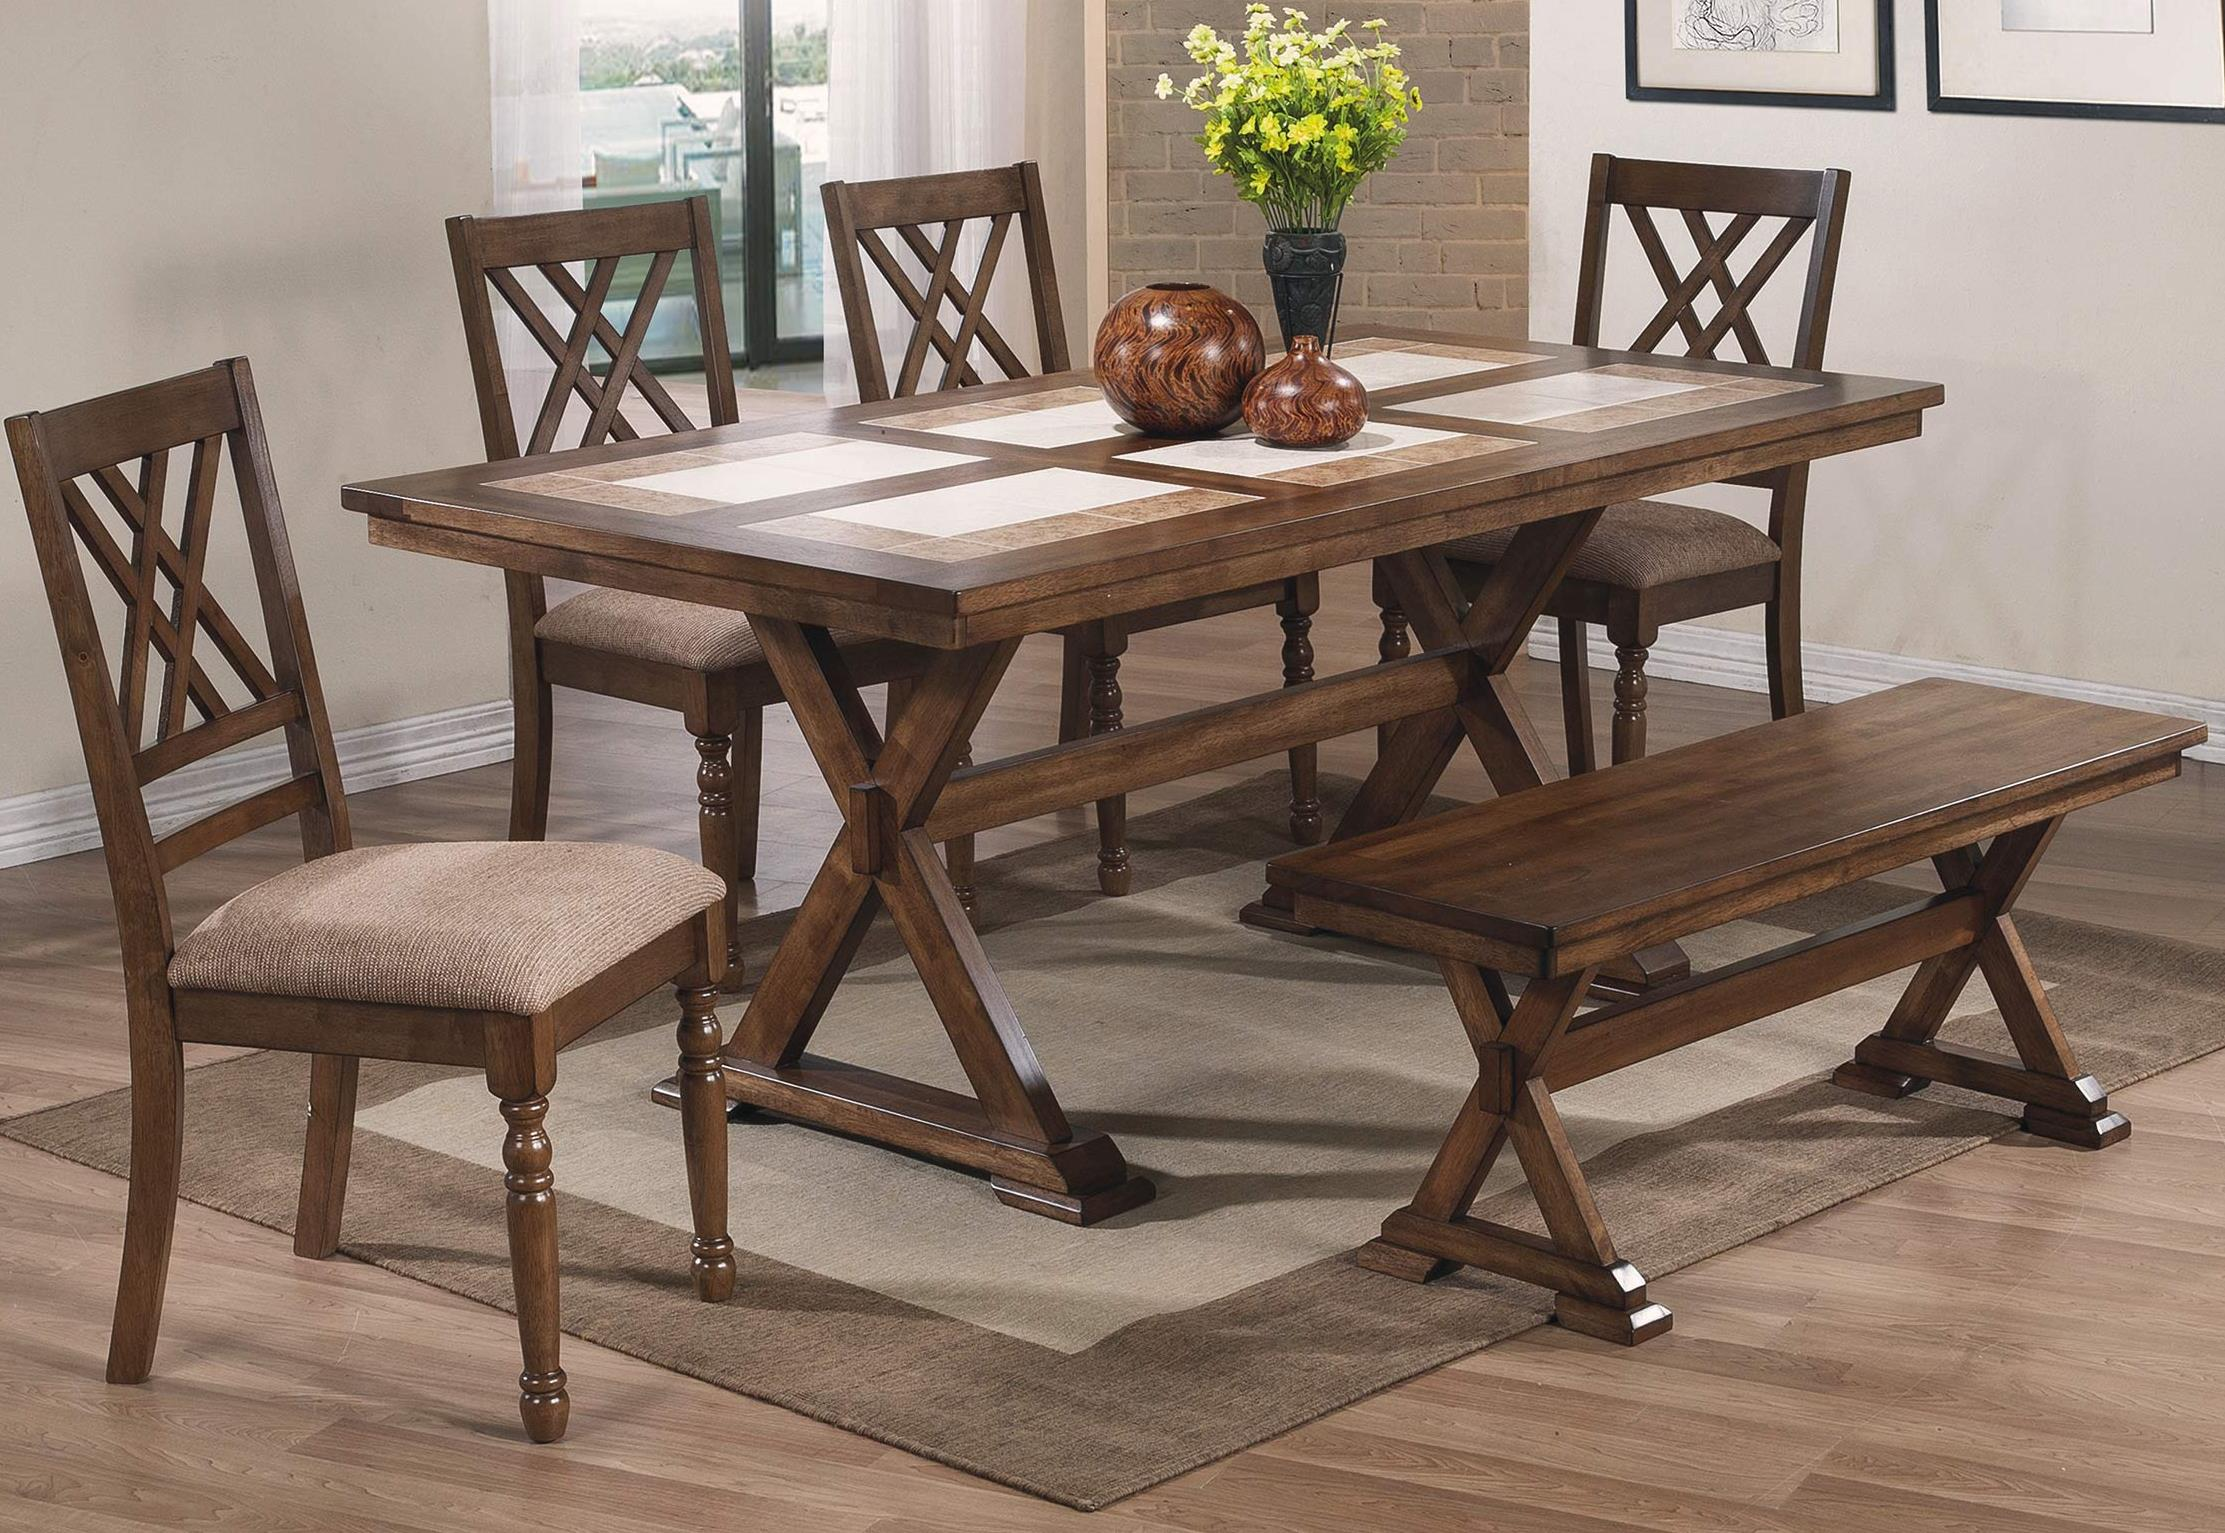 Winners Only Florence 6 Piece Dining Set with Bench - Item Number: DF13672M+4x451SM+455M